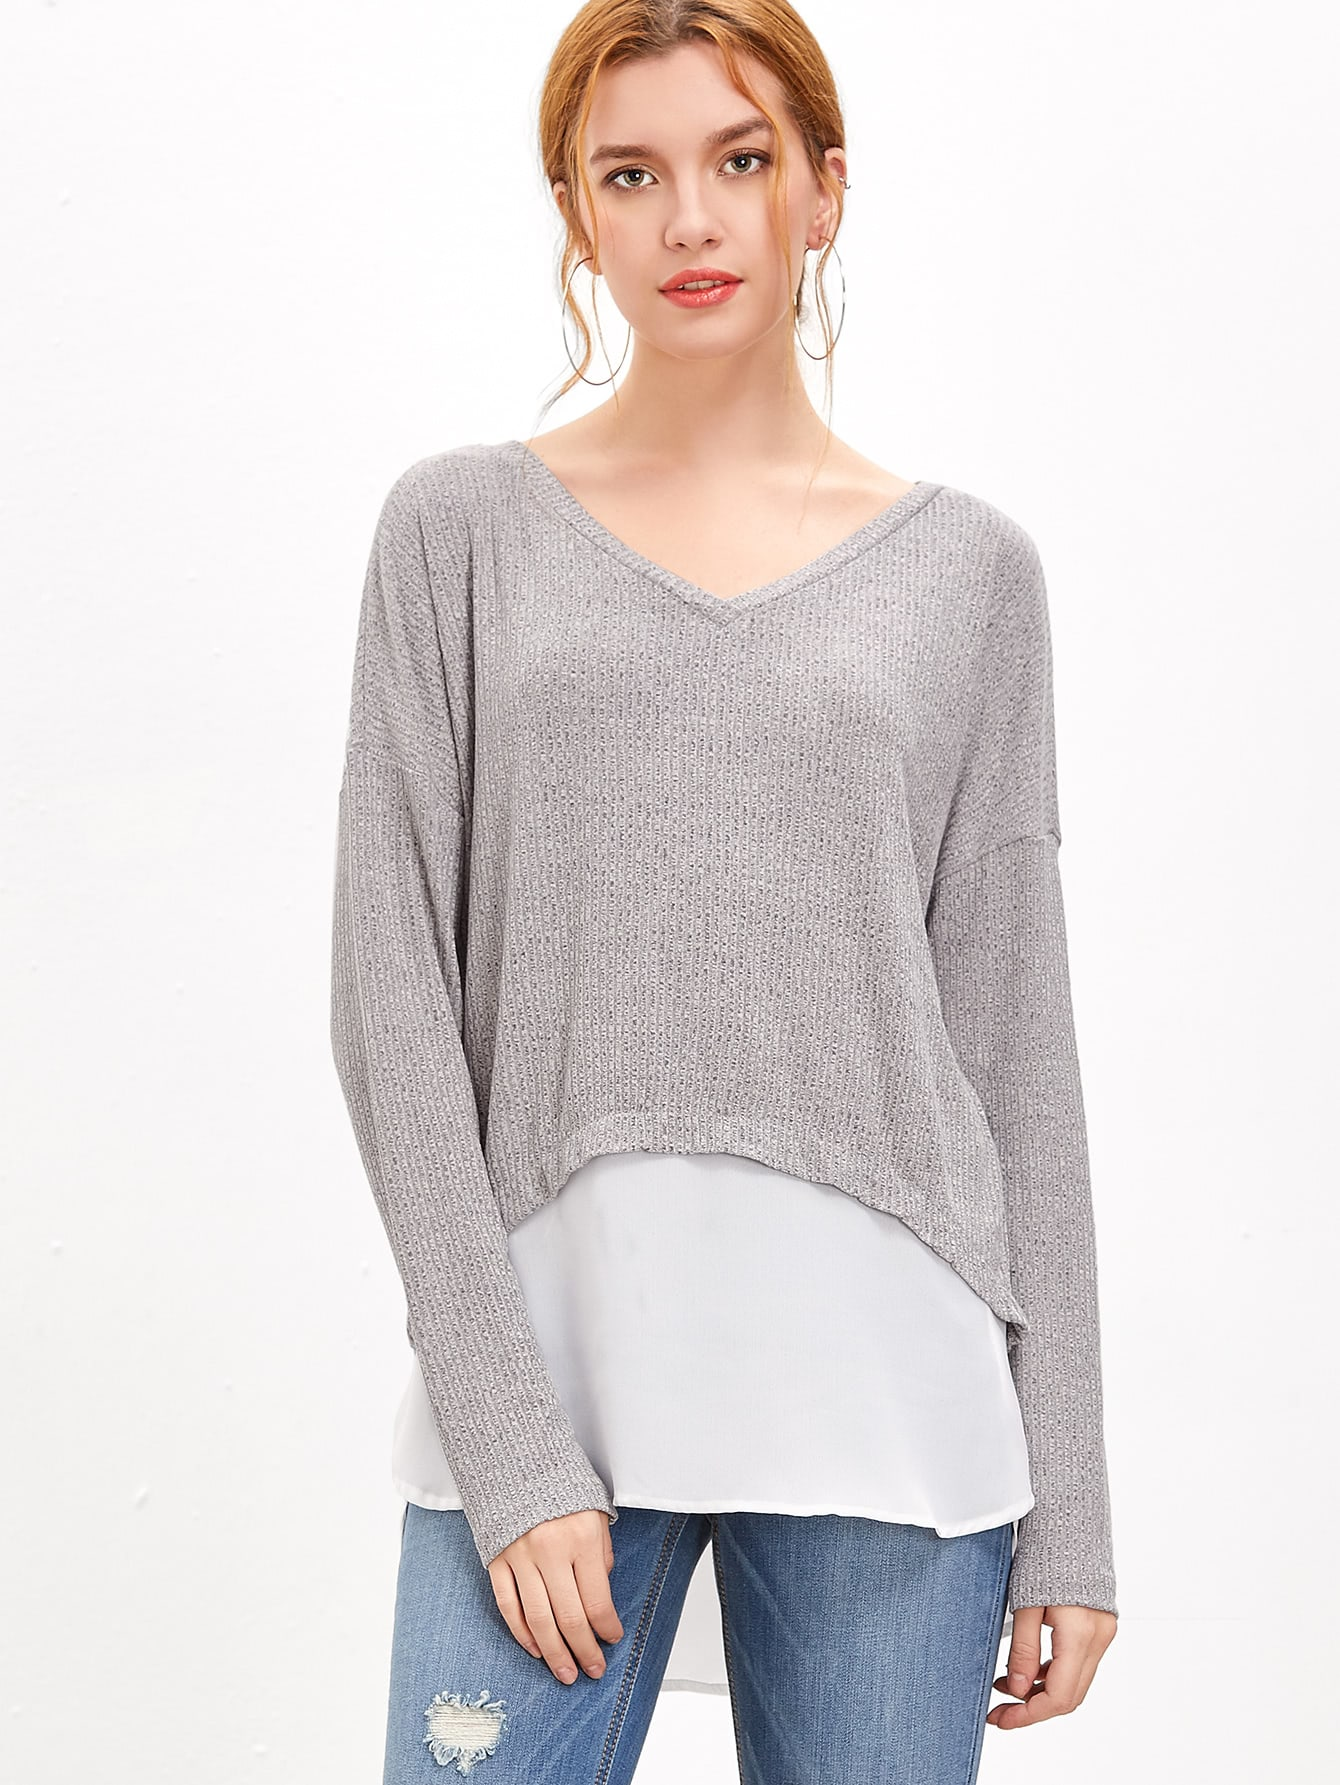 Heather Grey Contrast Trim Ribbed T-shirt tee161020705